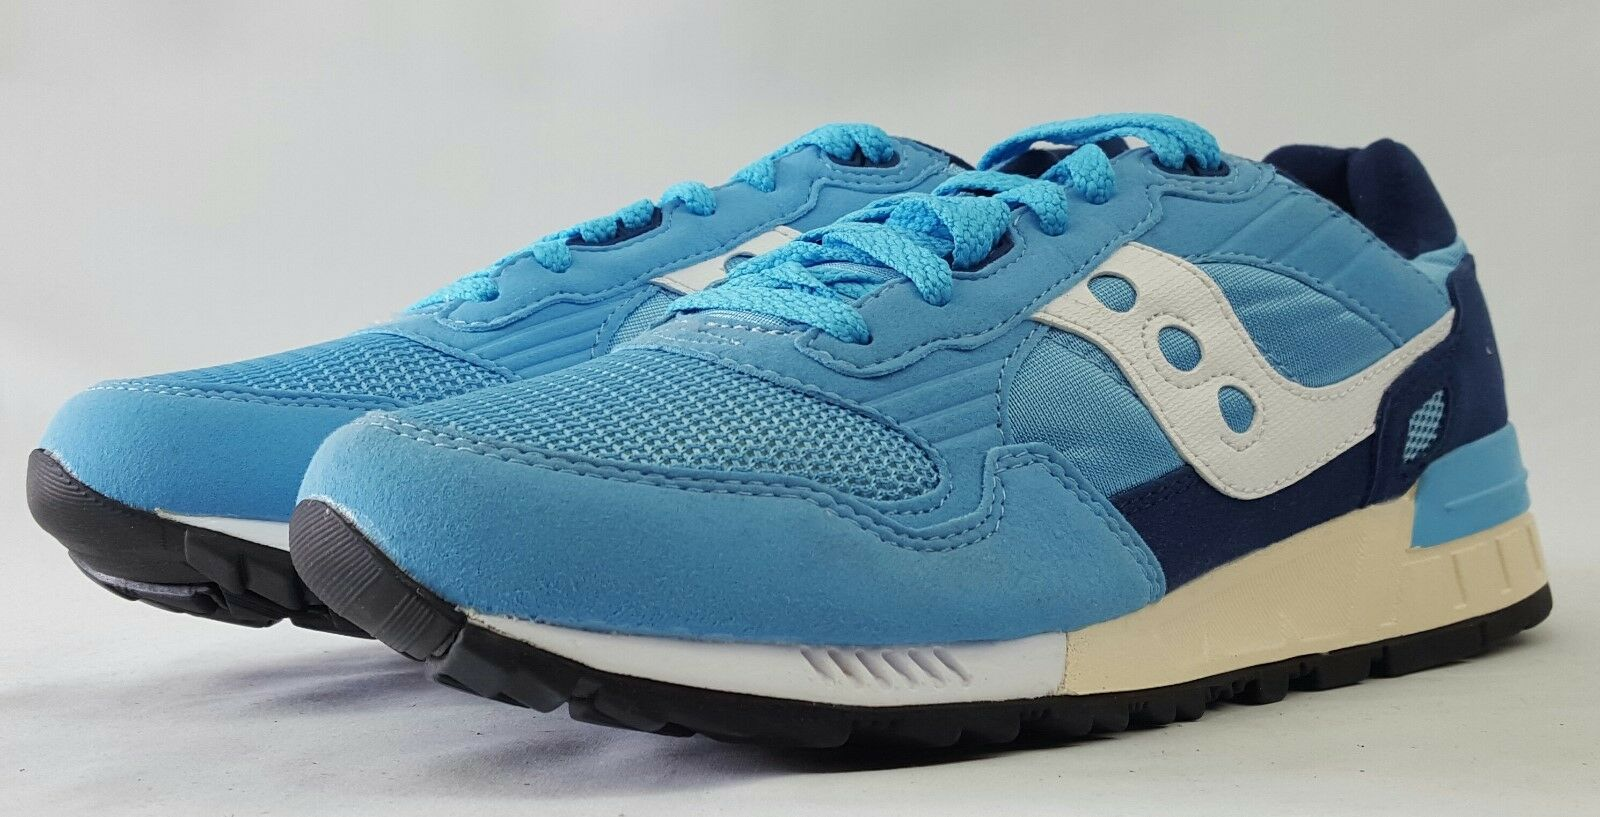 Exclusivo Saucony Shadow 5000  S70033-86 Envío Gratis